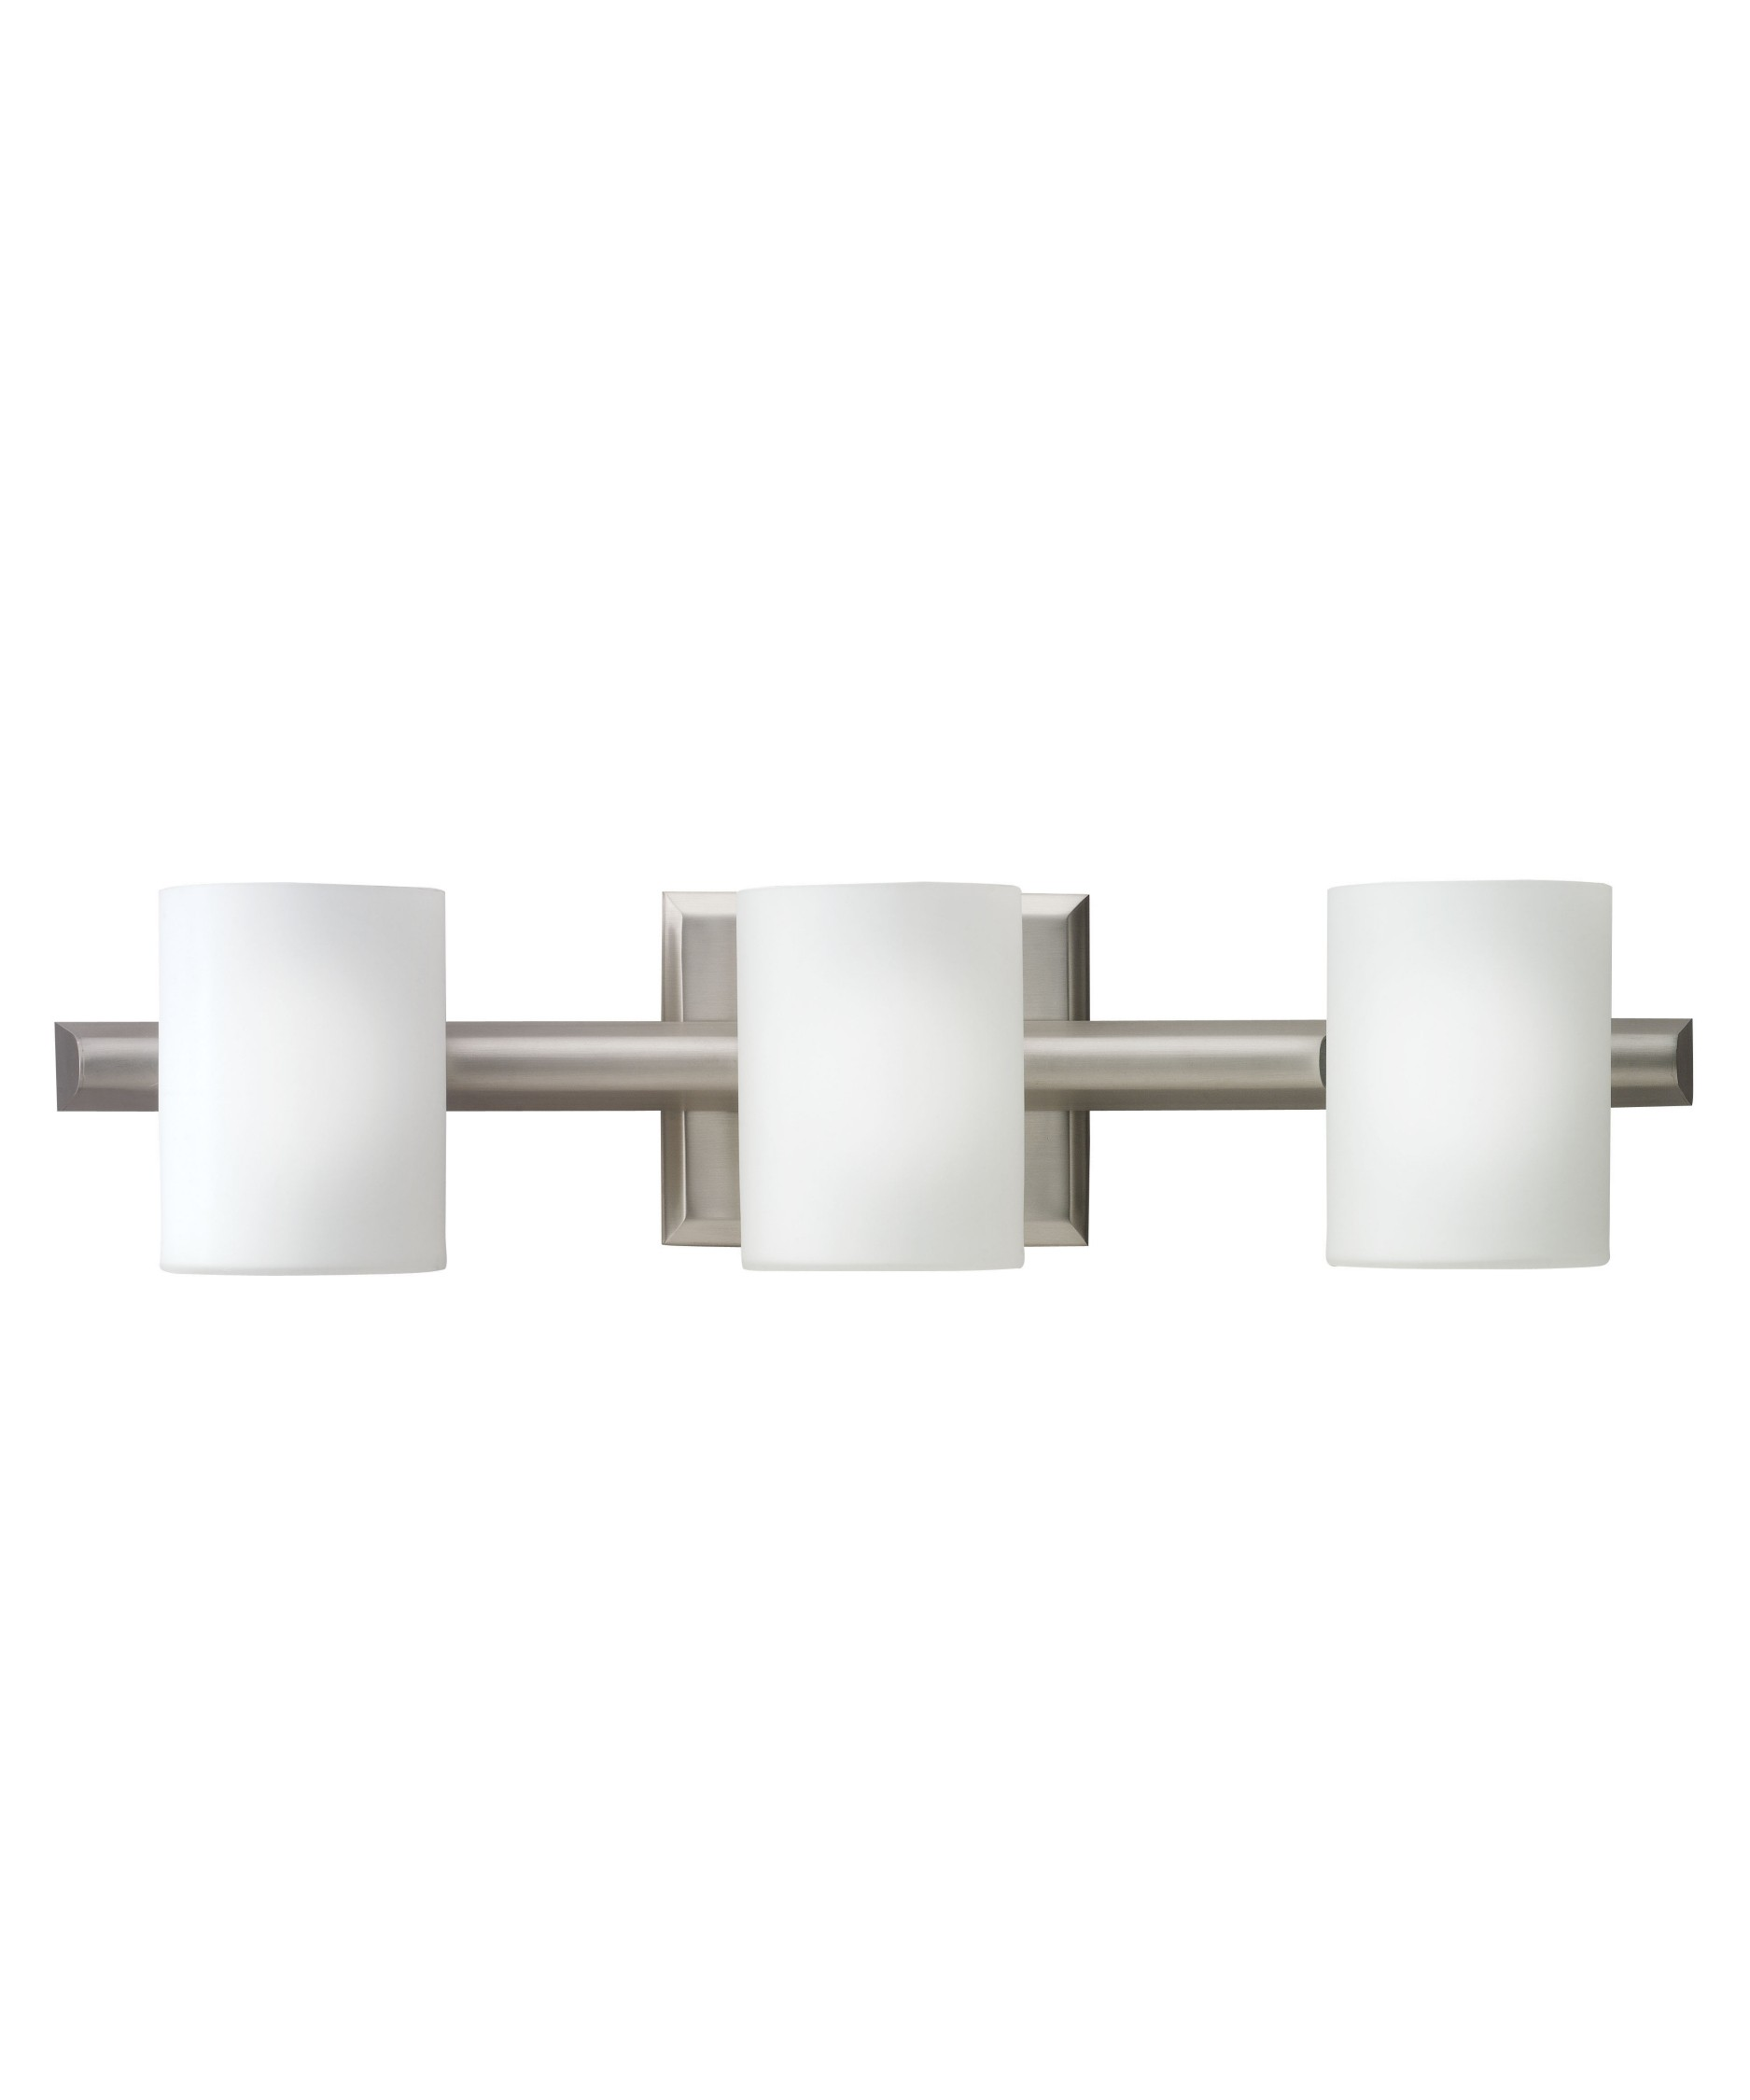 Bathroom Light Fixtures Contemporary Home Depot Bathroom Light Fixtures Picture Bathroom